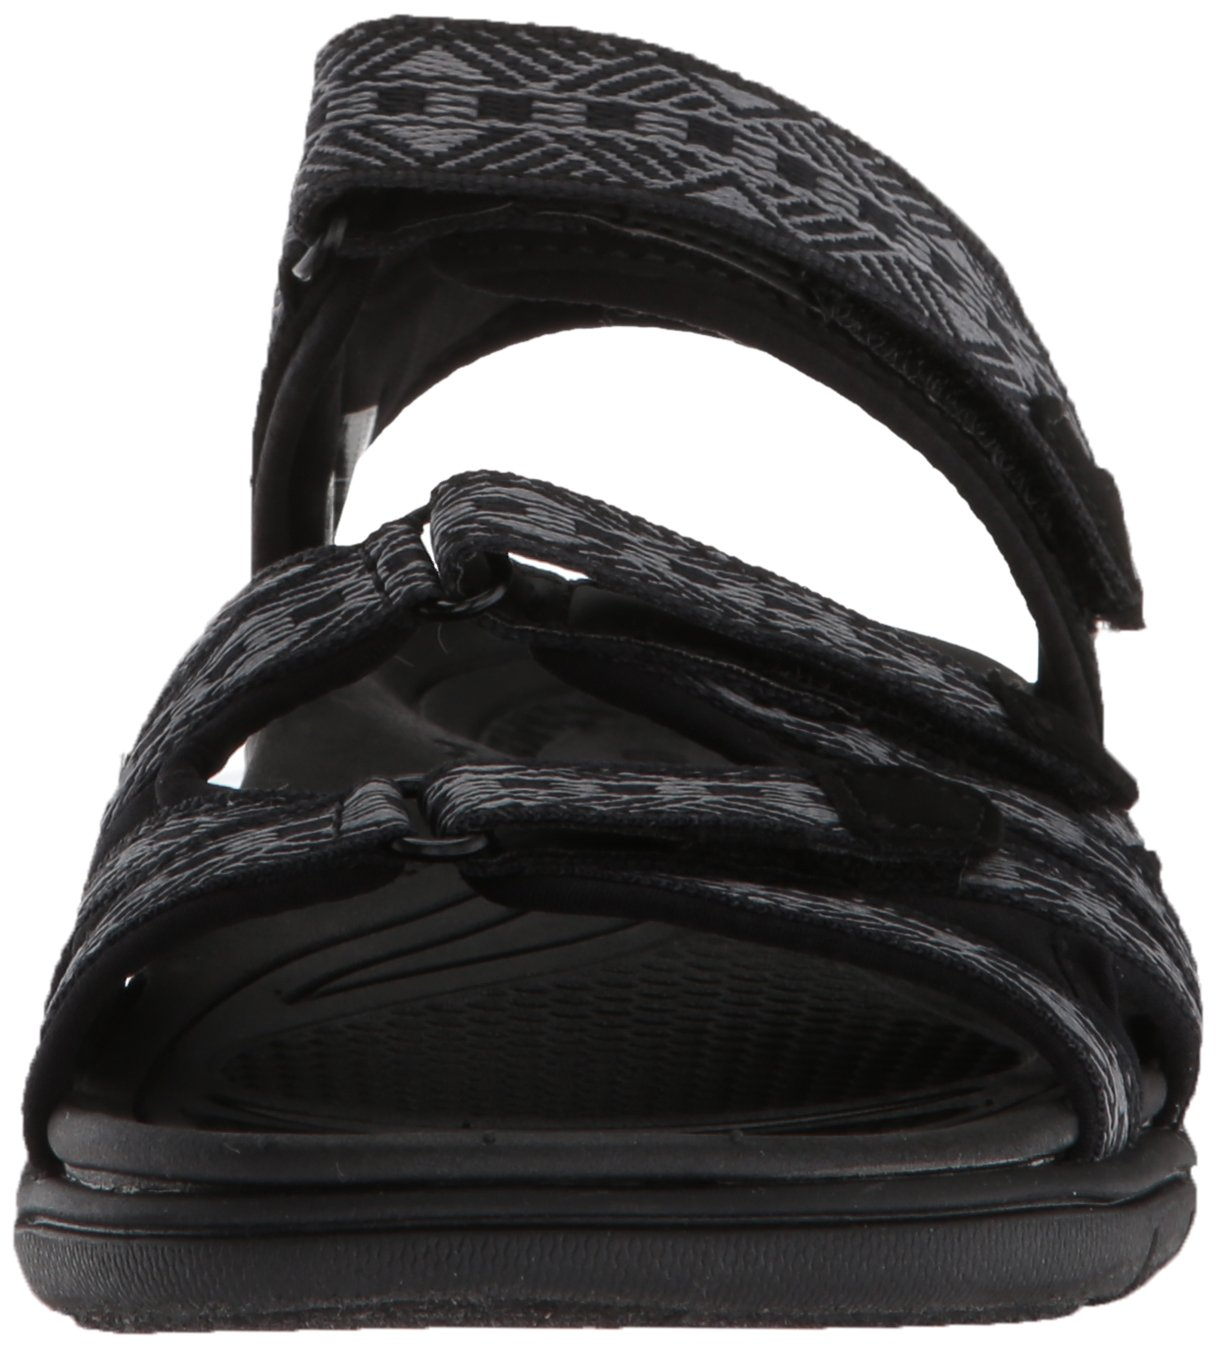 Ryka Women's Savannah 5 Sandal B01KWH6932 5 Savannah B(M) US|Black/Grey 9e507d